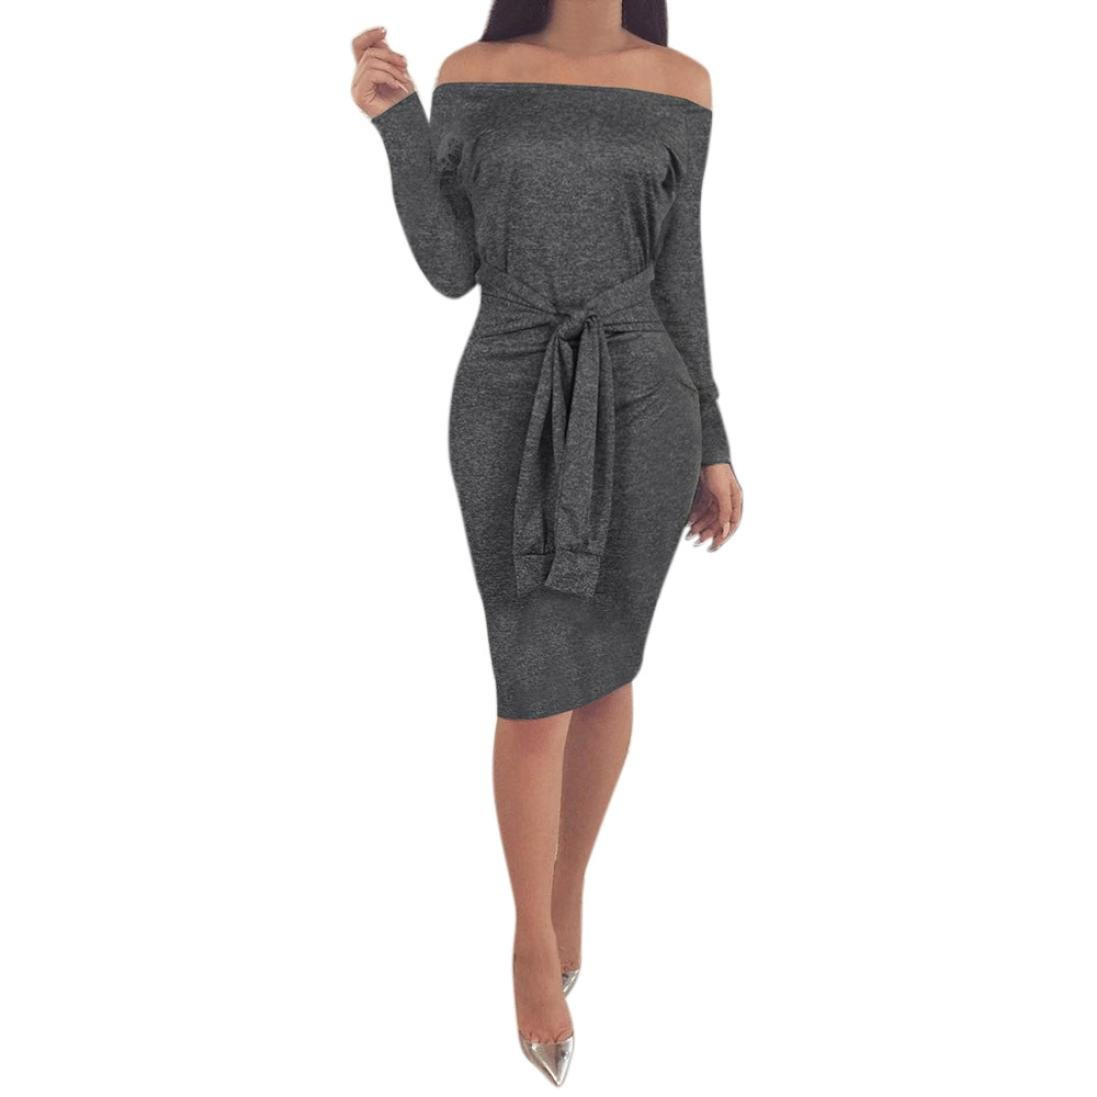 Mikey Store Women Casual Bodycon Dress Off Shoulder Long Sleeve Evening Party Mini Dress (Small, Dark Gray)